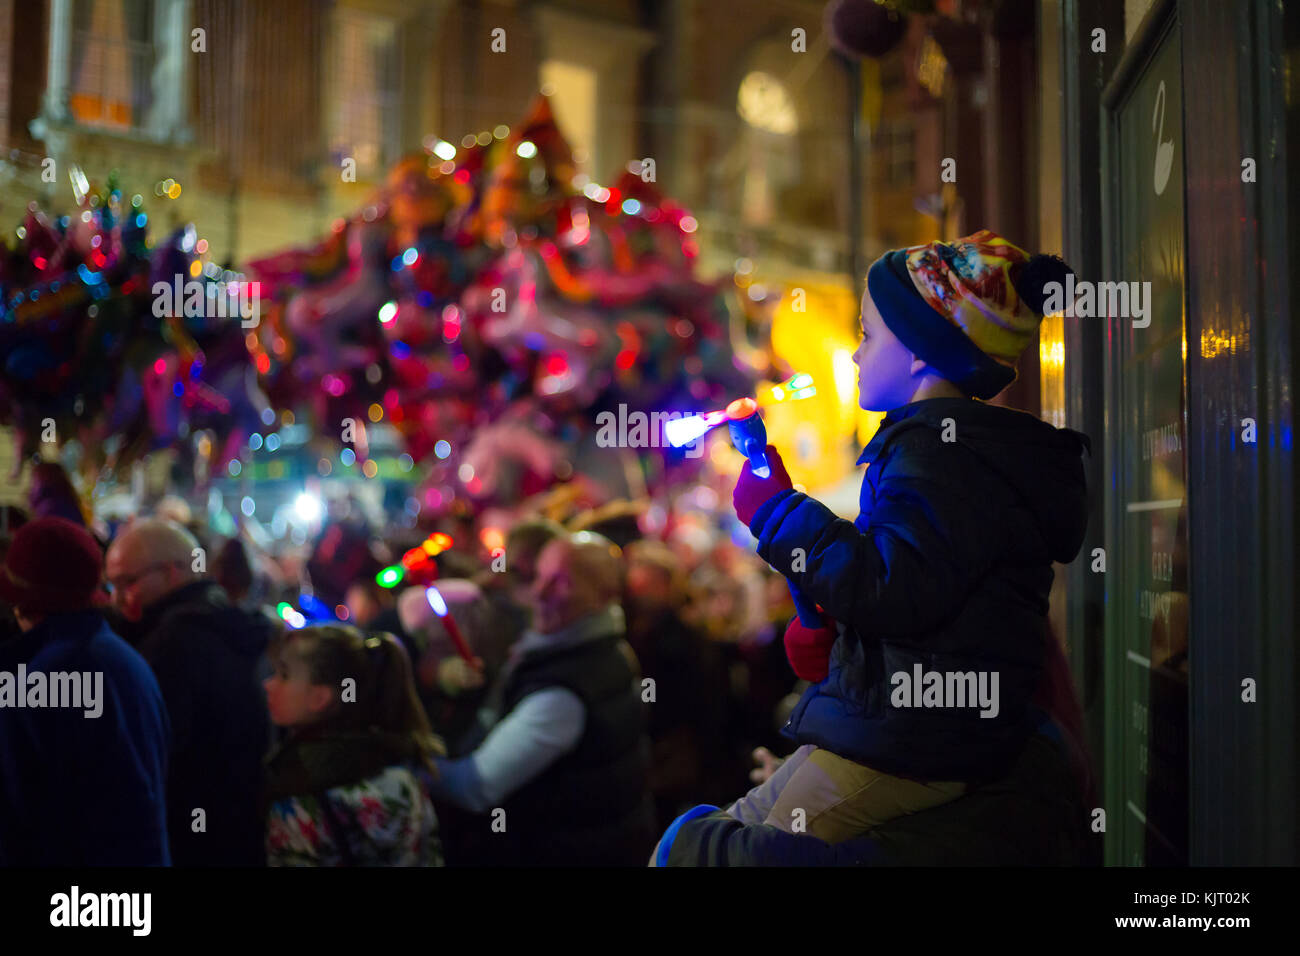 Kidderminster town switches on its Christmas lights as one delighted little boy joins in the fun perched high on - Stock Image